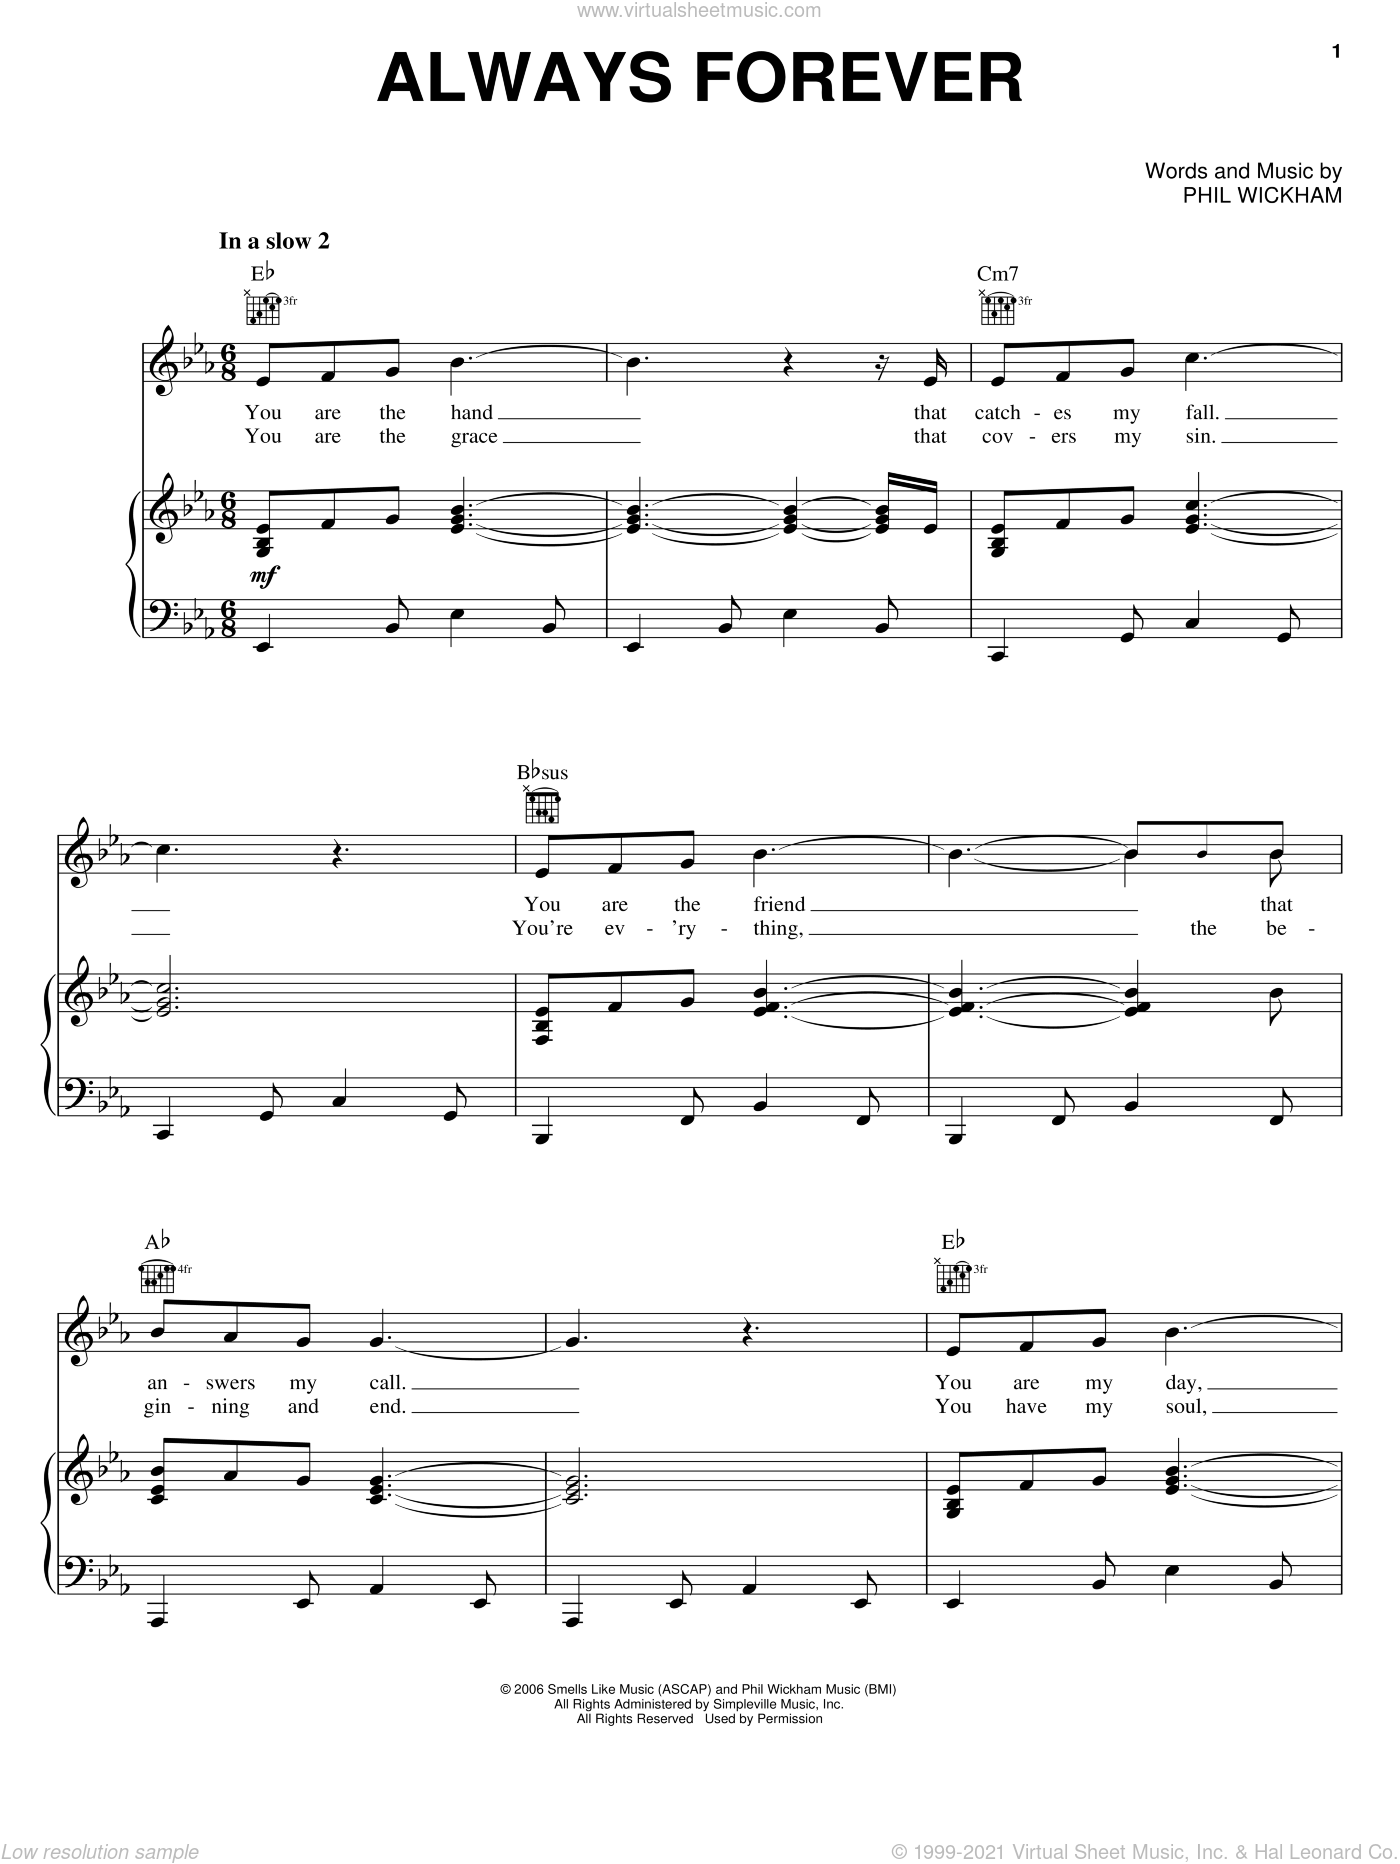 Always Forever sheet music for voice, piano or guitar by Phil Wickham